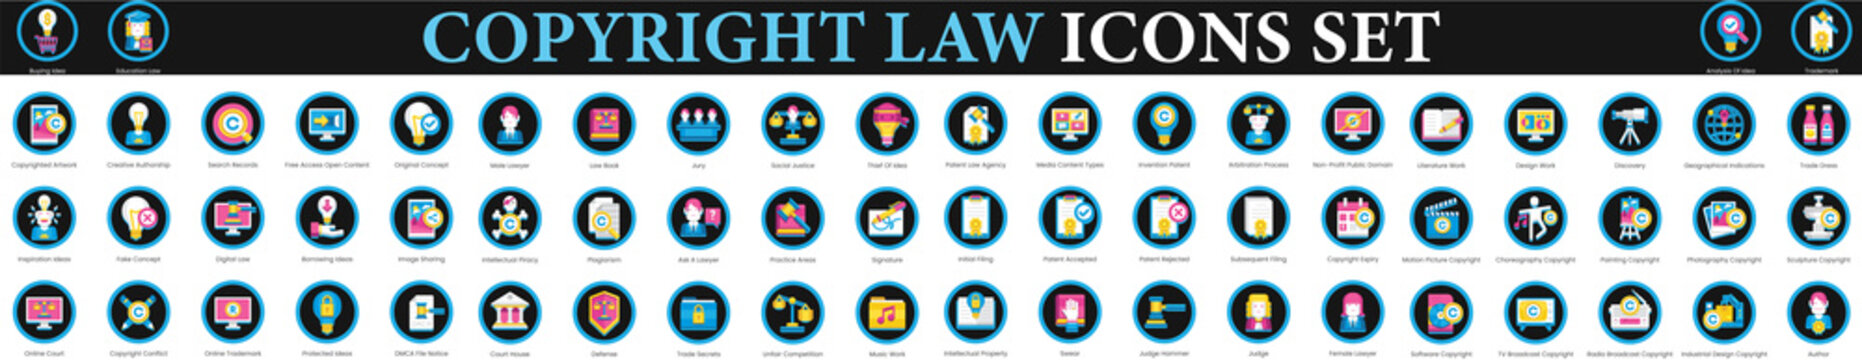 Copyright Law Icons. property intellectual copyright icons set